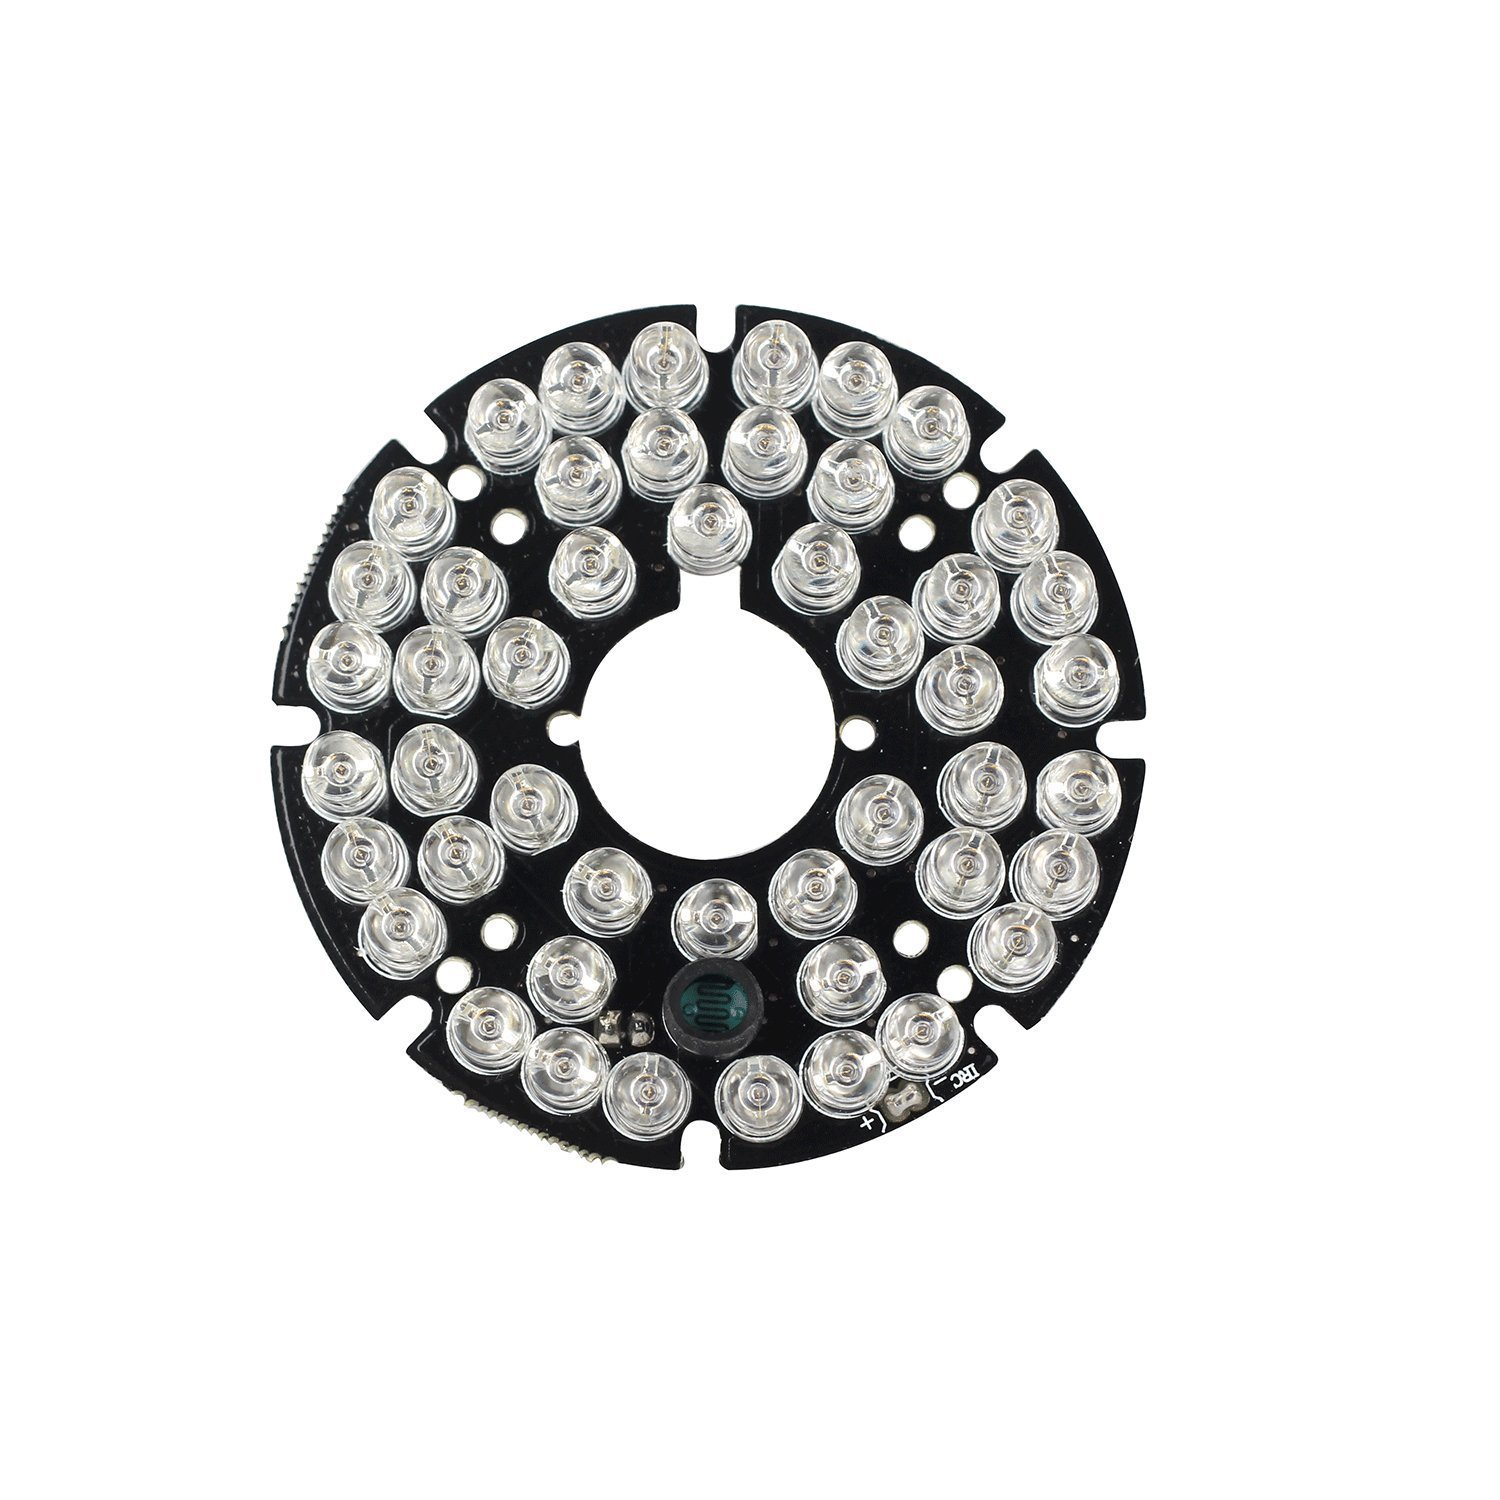 HonYan 2PCS 48 LEDs 5mm 940nm IR Infrared Board Round Plate 90 Degrees by HonYan